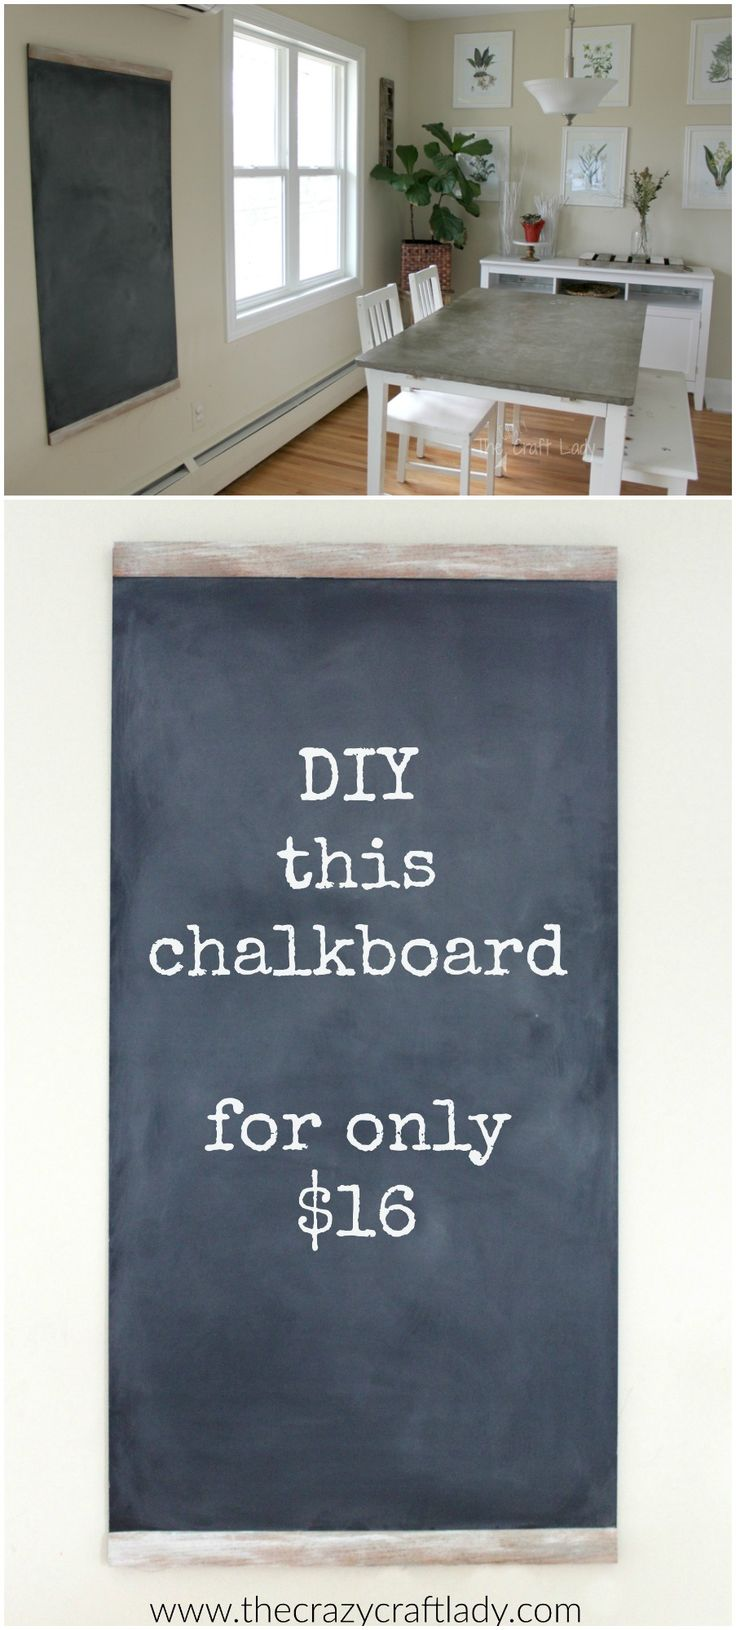 chalkboards are so popular in home decor right now diy this large chalkboard for only